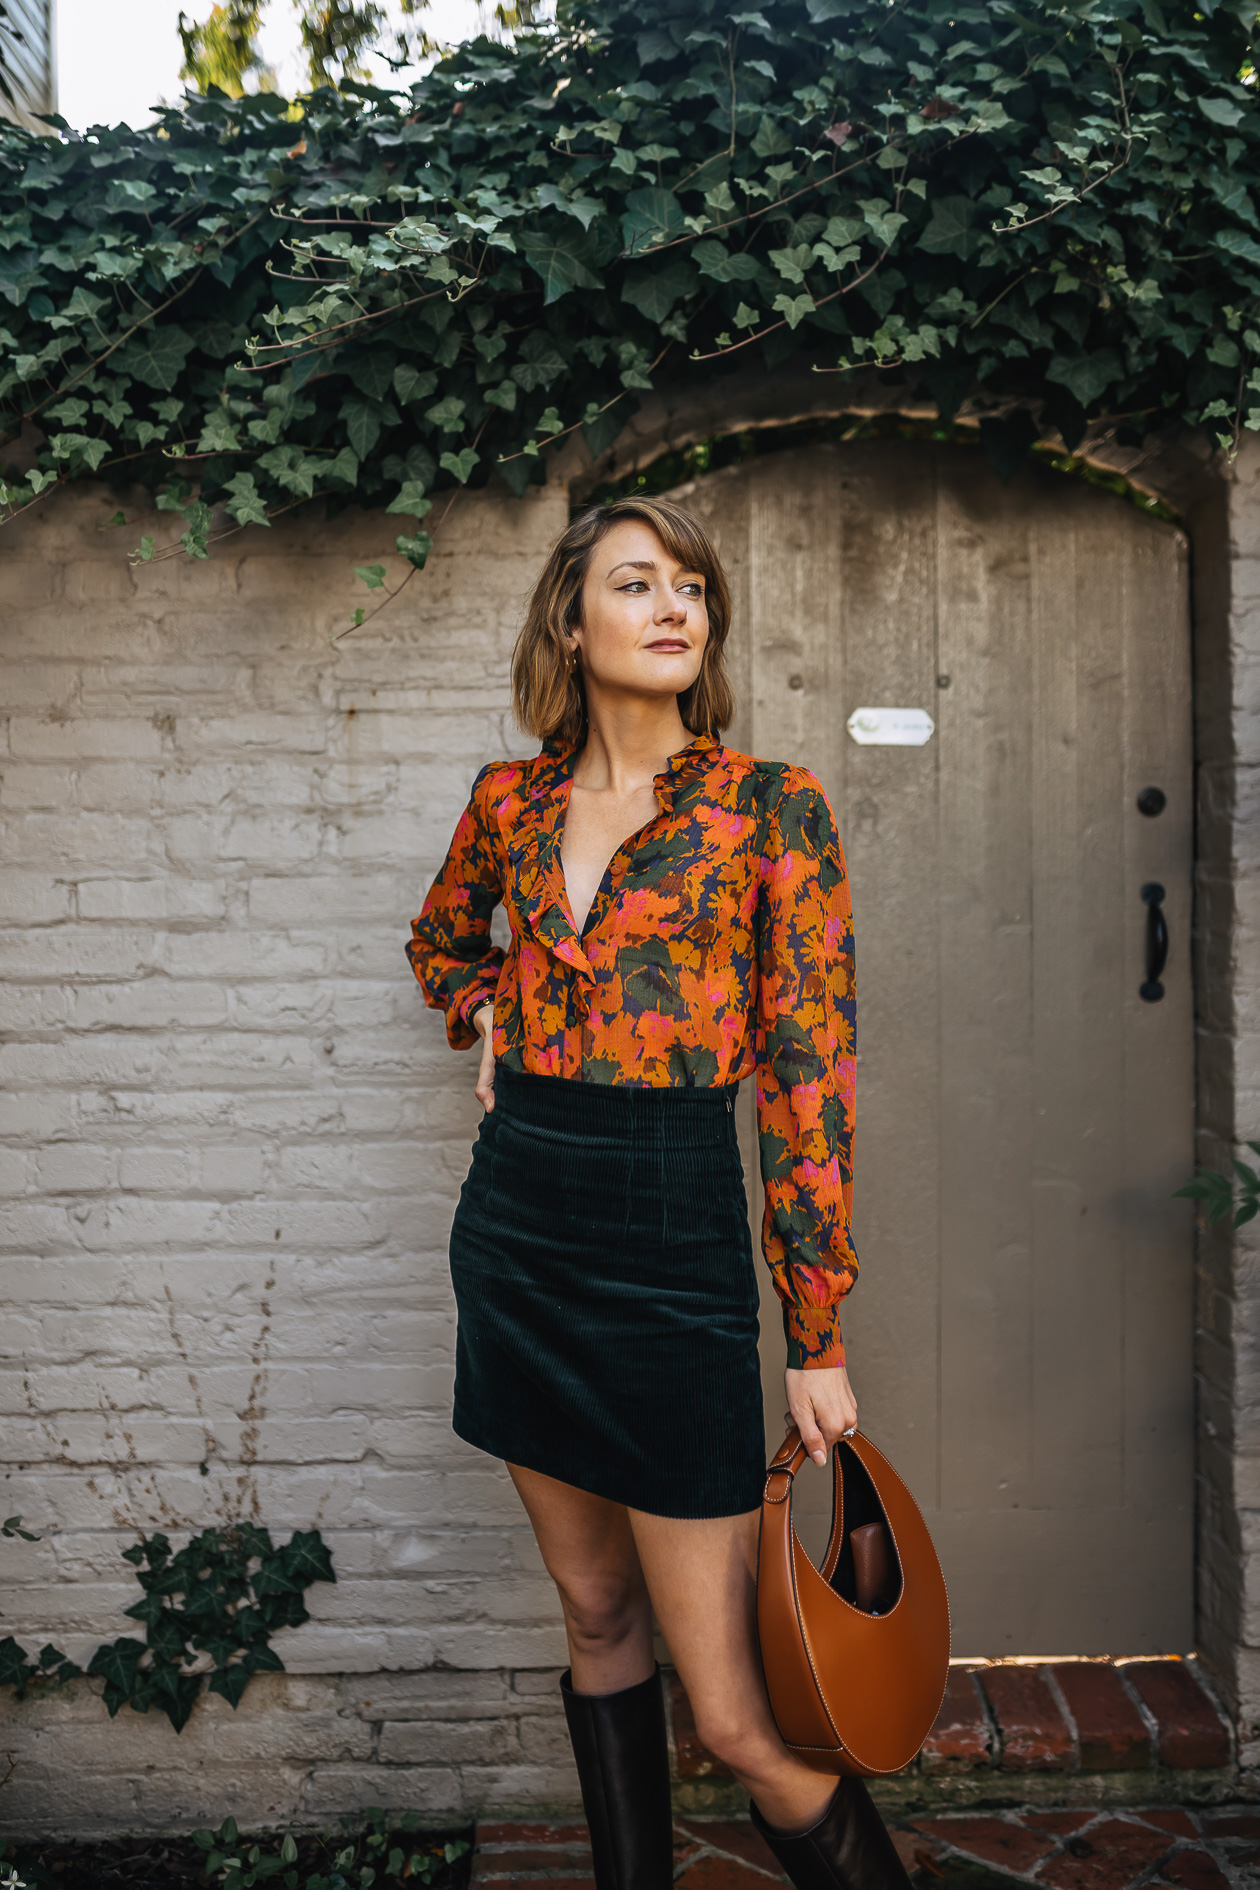 Sezane vintage-inspired fall outfit